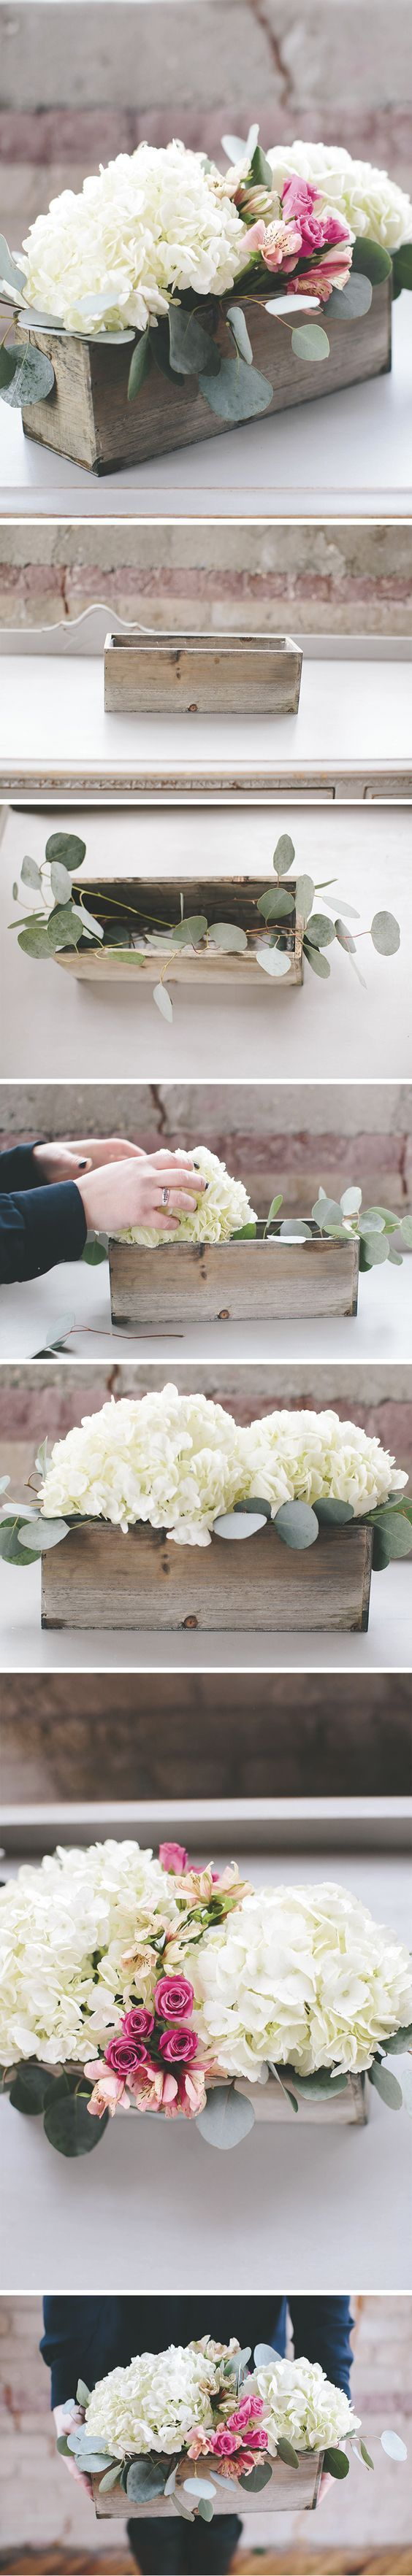 Create the wedding of your dreams and save time and money with these DIY centerpieces, including: submerged flowers, succulent gardens, faux cotton plants, lace covered vases and tiny herb bouquets!